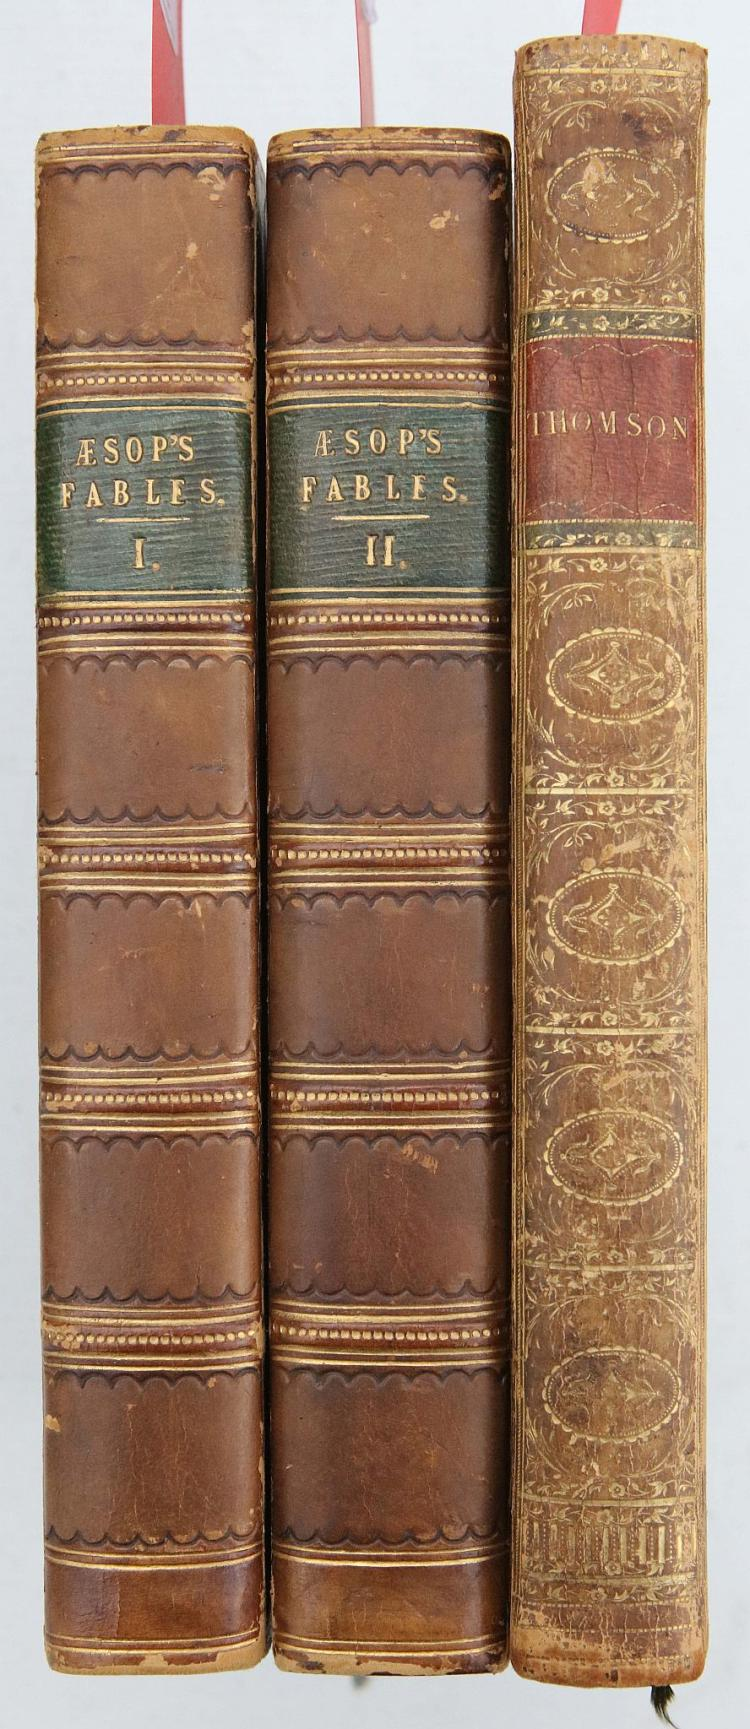 STOCKDALE, John (1750-1814, publisher).  The Fables of Aesop. With a Life of the Author: and Embellished with one Hundred & twelve Plates. London: John Stockdale, [probably 1793]. 2 volumes, 8vo. Engraved titles with vignettes and plates (titles trimmed with partial loss of imprint, including dates, some spotting). Later purple half calf with pebbled boards (rubbed). Provenance: William James (bookplate). [?]FIRST STOCKDALE EDITION. Bentley Blake 460 (note). Bentley cites a publisher's advertisement in another work which states that the Stockdale Aesop will contain plates by William Blake; however, none, in the present work are signed in the plate by him, so the matter remains one of speculation. With James Thomson's The Seasons (London, 1793). (3)